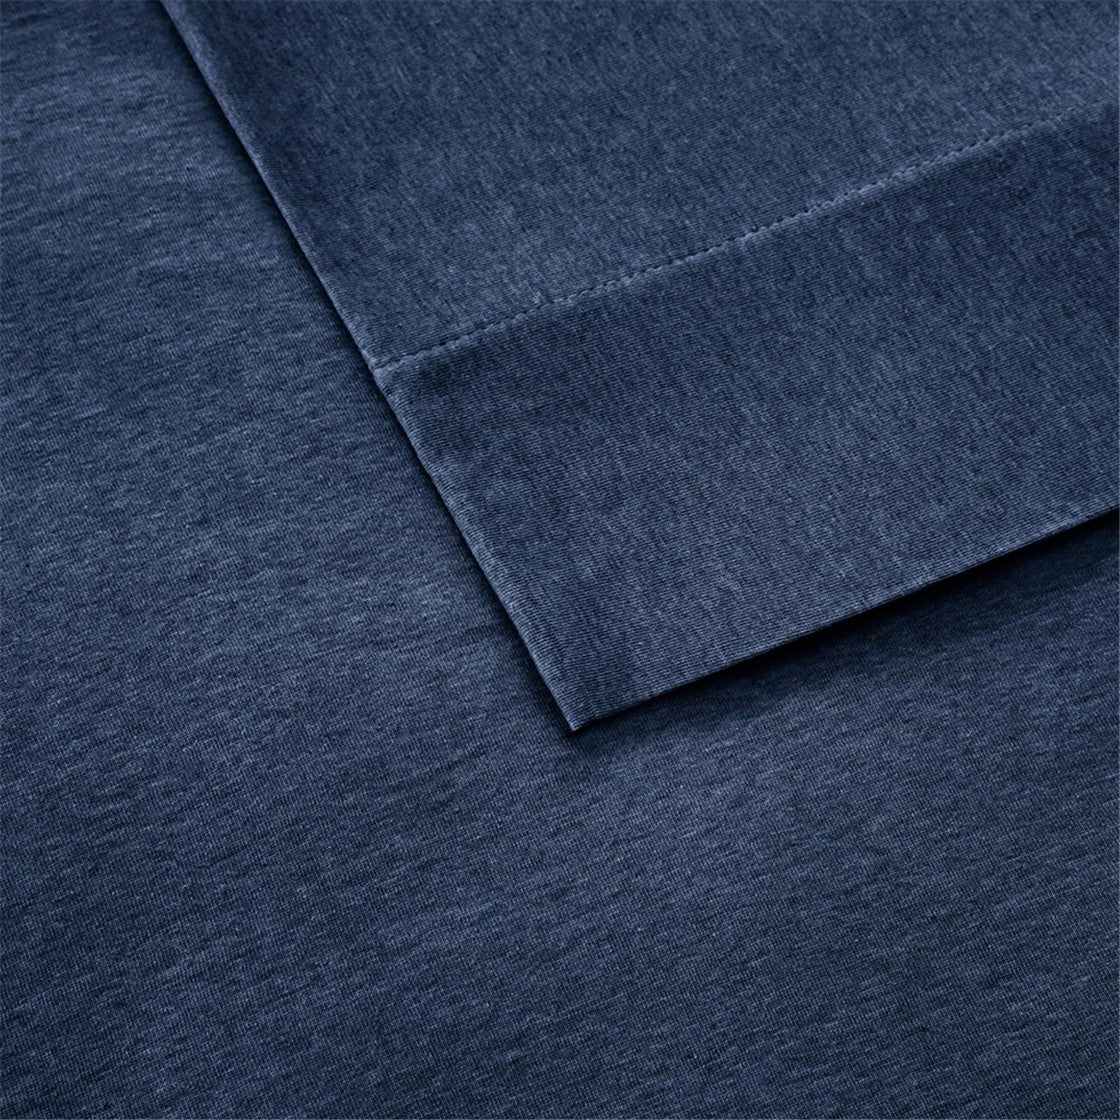 Cotton Jersey Knit All Season Heathered Sheet Set